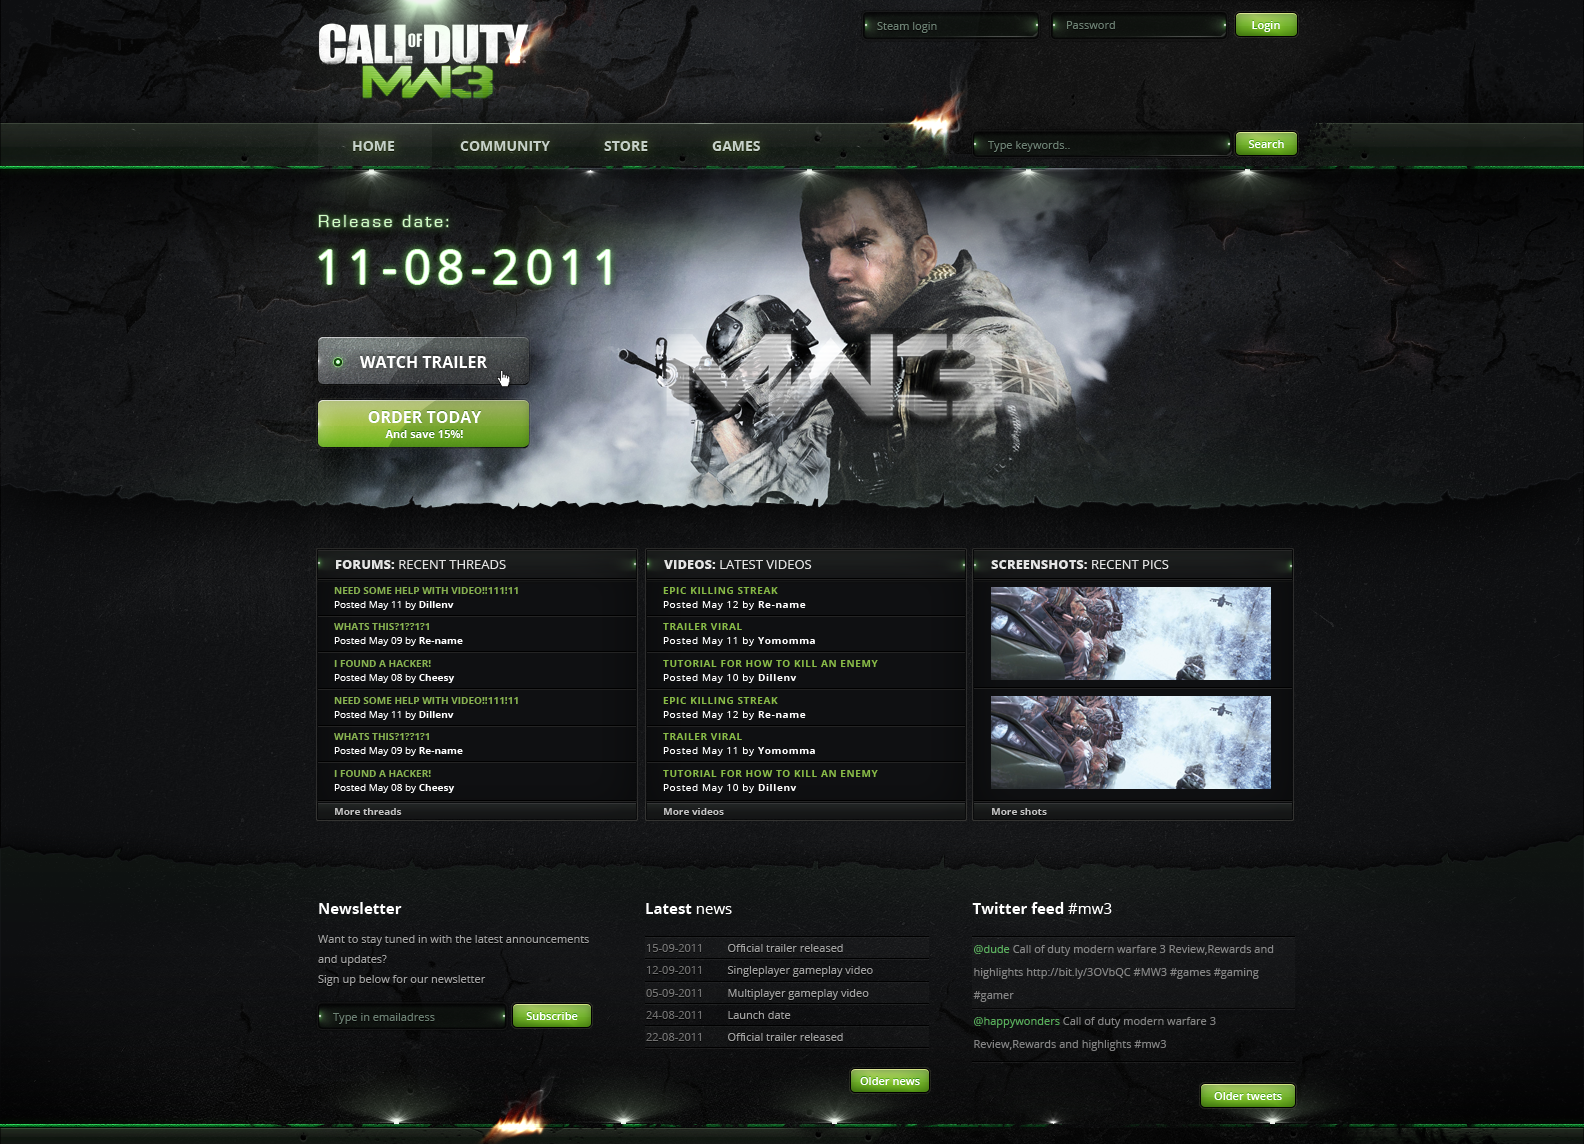 modern_warfare_3_layout_by_djdillen-d3g5umr.png (1584×1144)